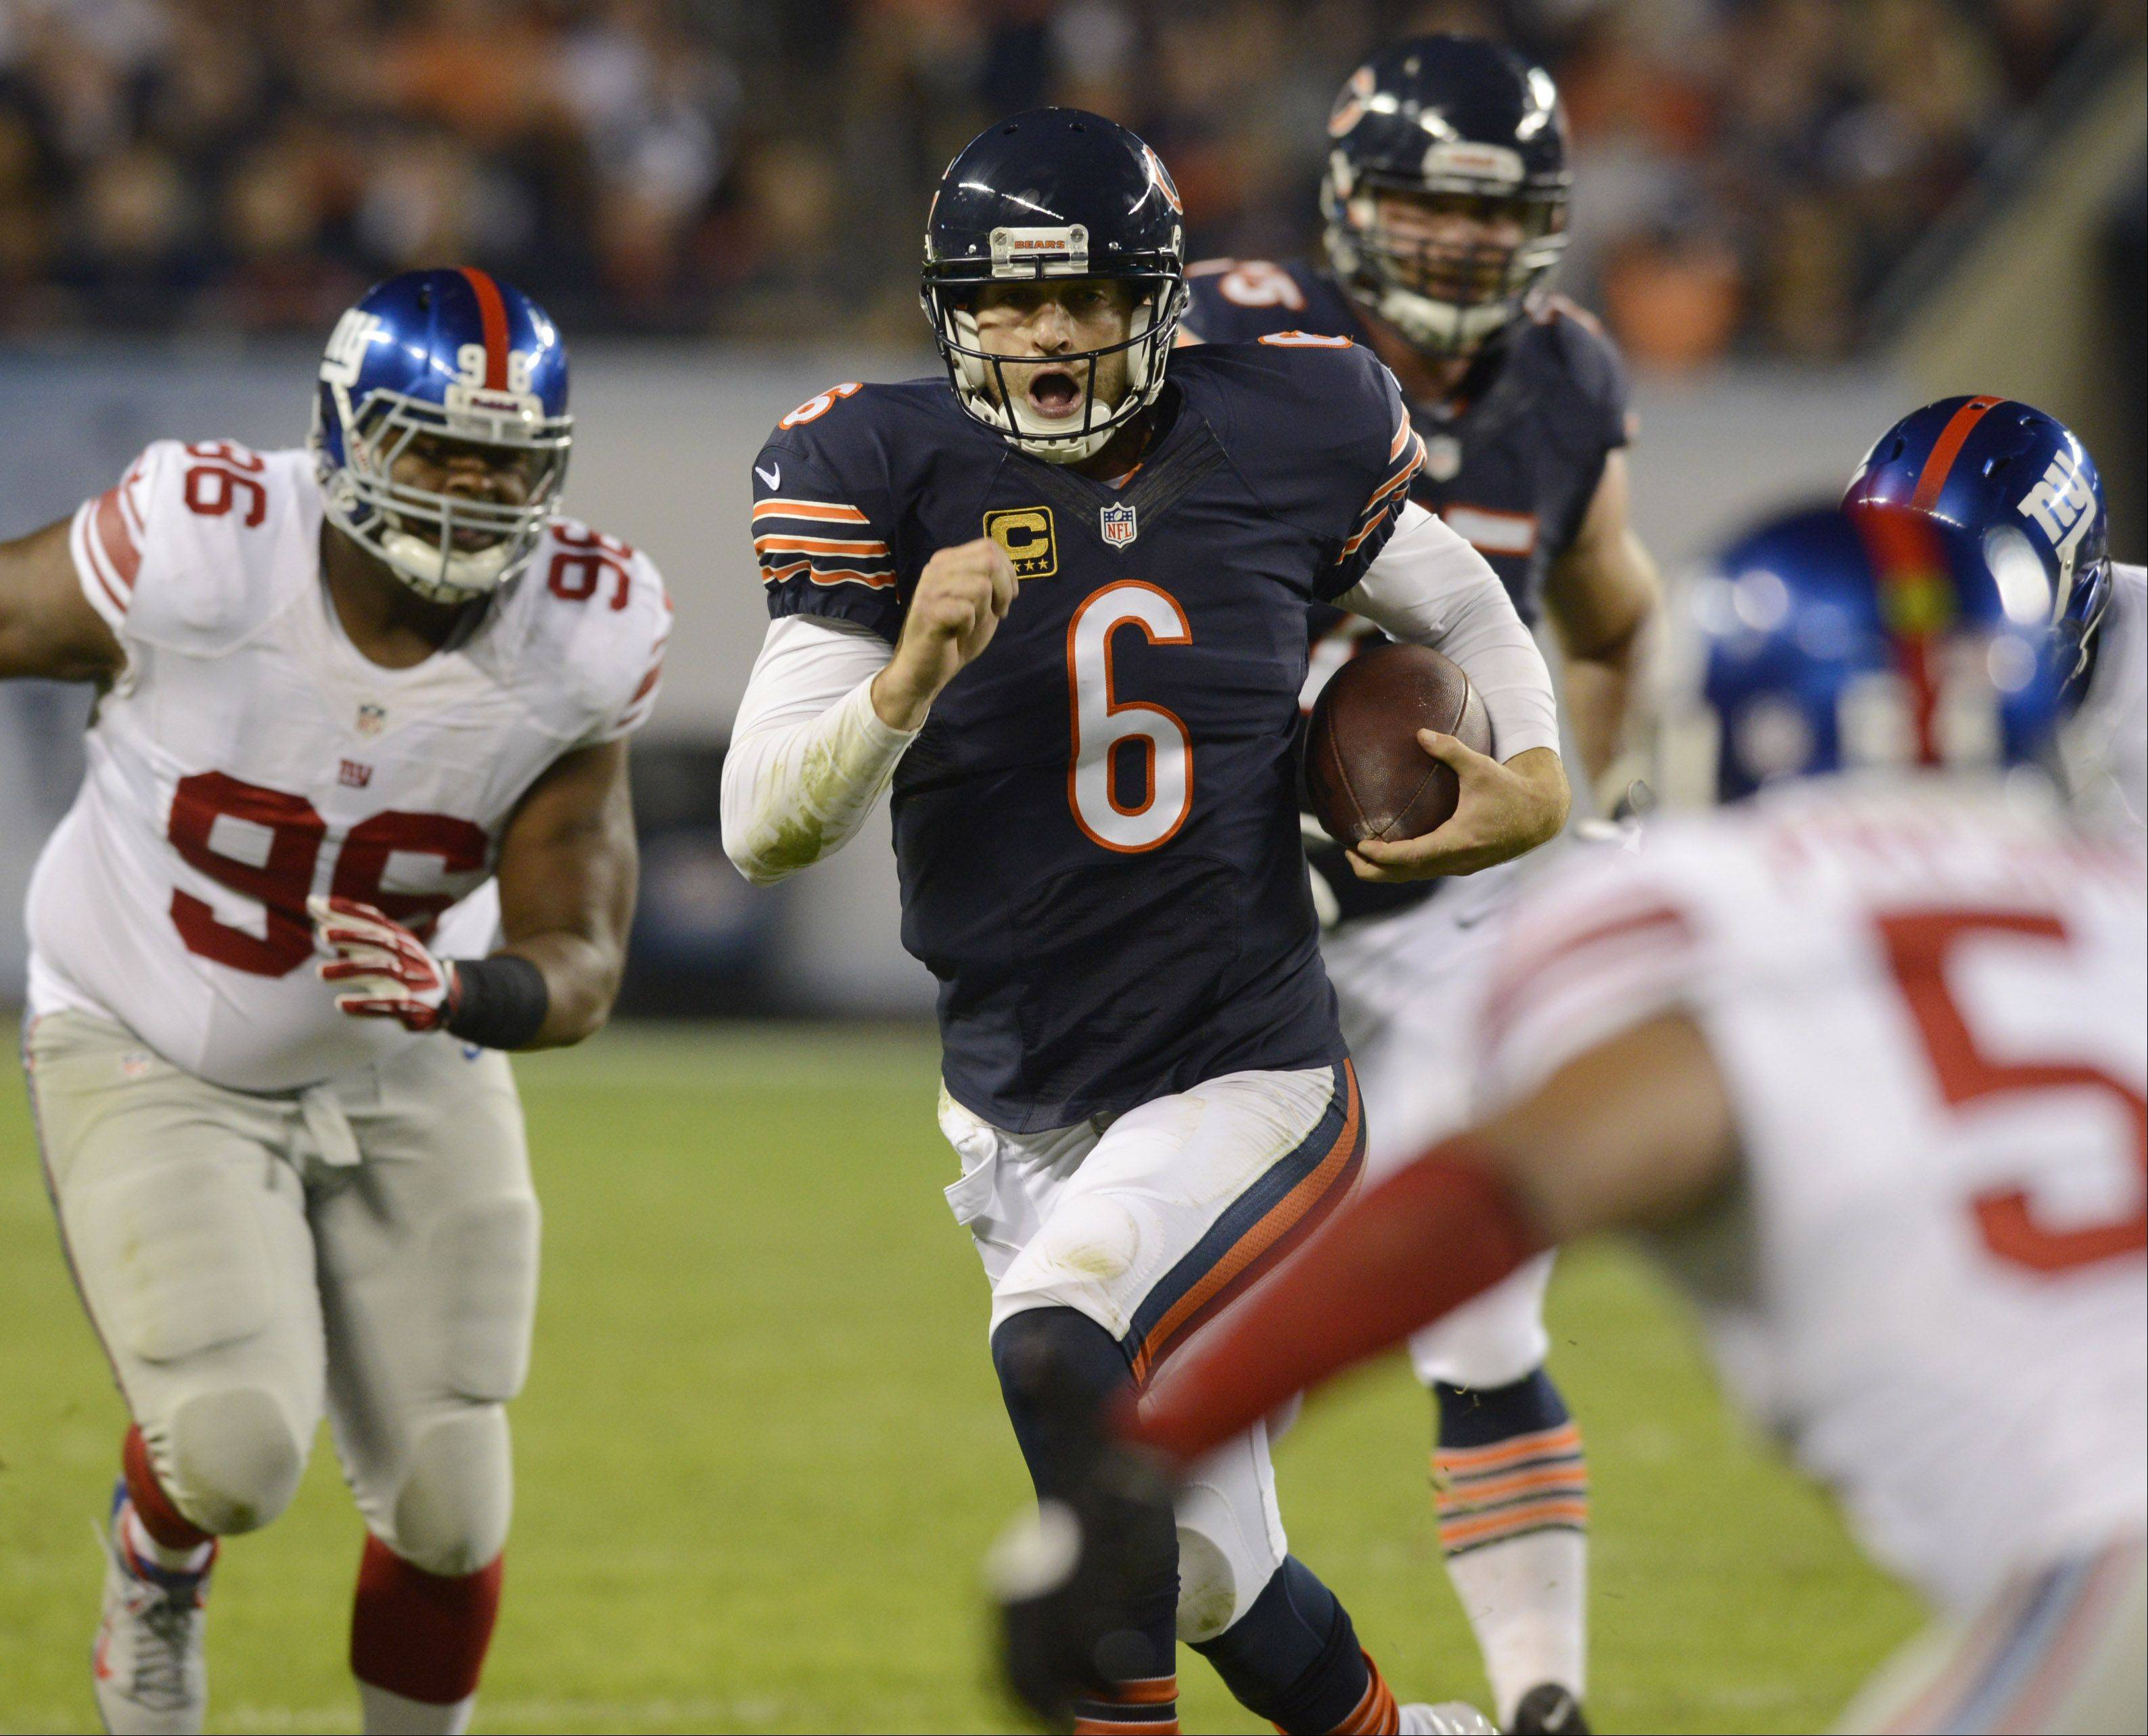 Jay Cutler escapes the pocket during the Bears' victory against the Giants on Thursday. Cutler ran three times for 20 yards.